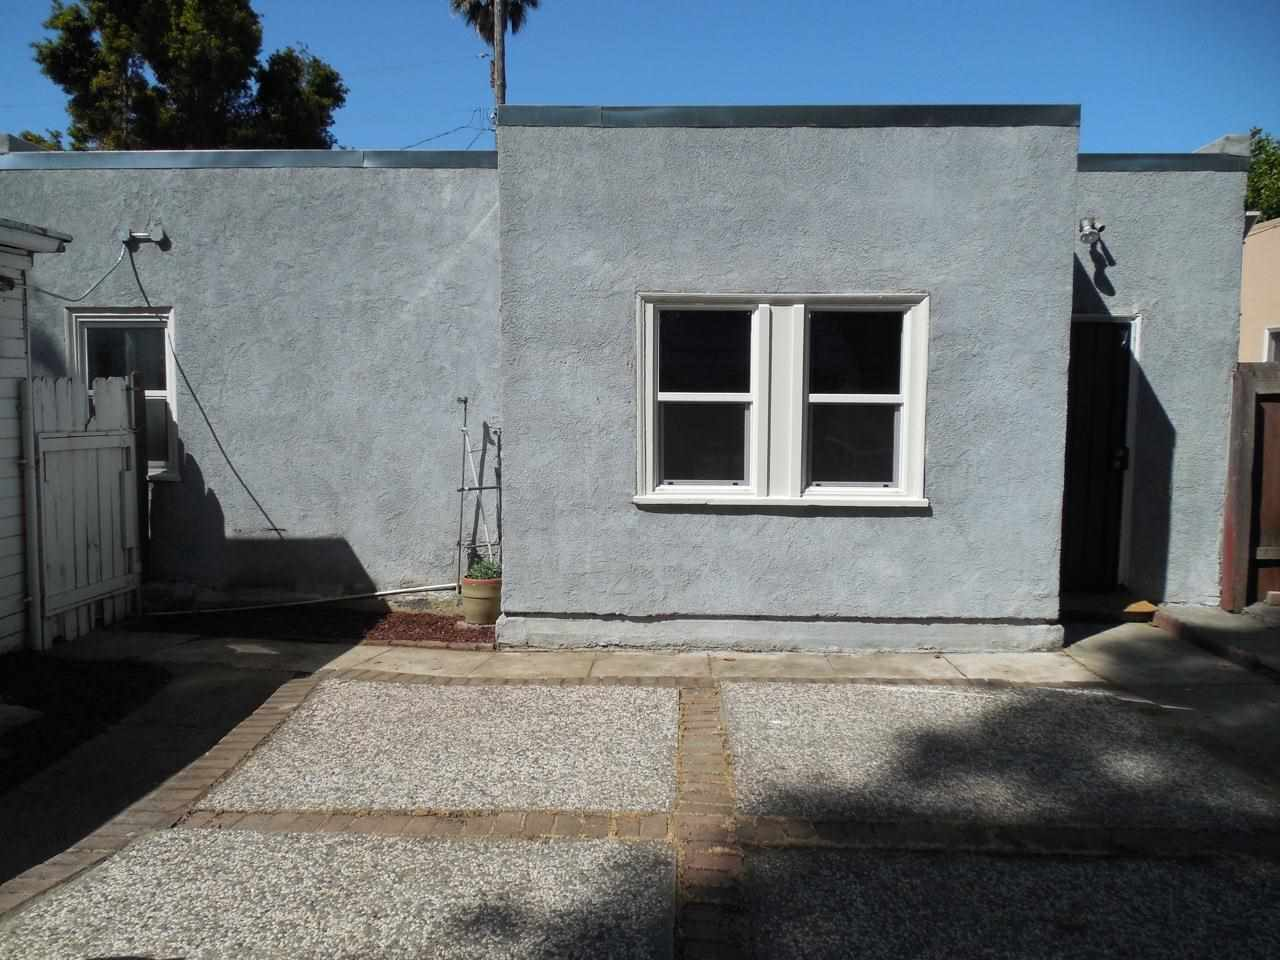 Additional photo for property listing at 4126 CULVER Street  Oakland, Kalifornien 94619 Vereinigte Staaten